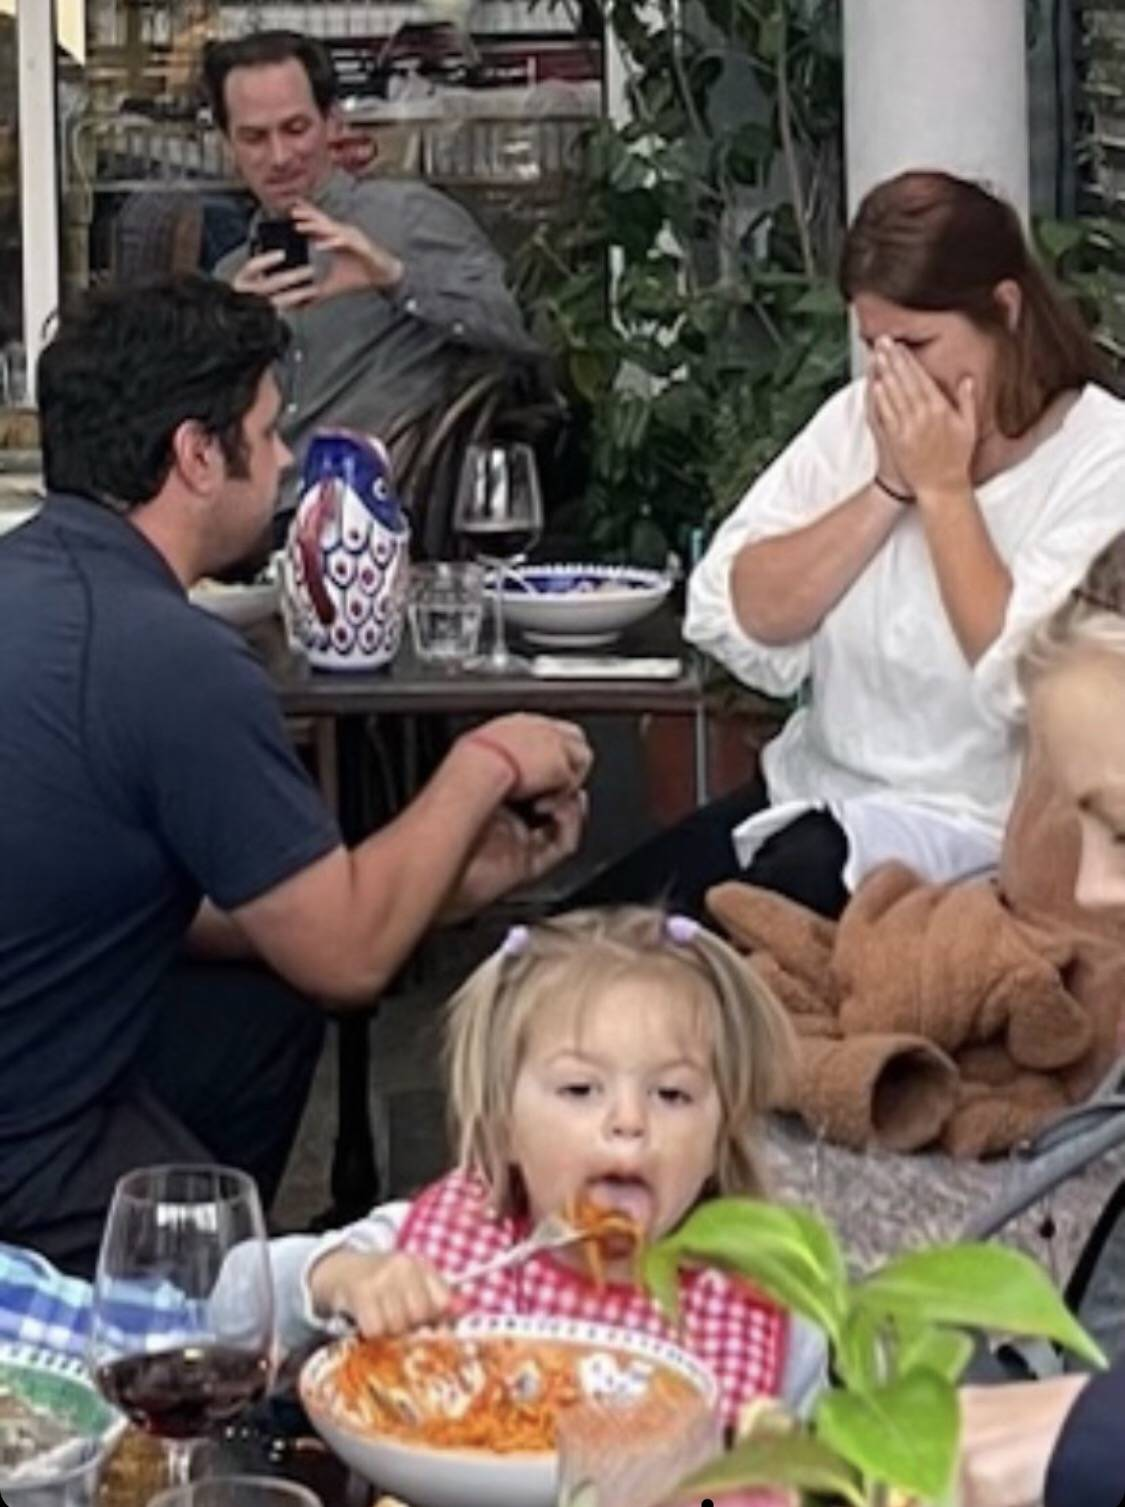 Engagement proposal at restaurant with toddler eating spaghetti in foreground